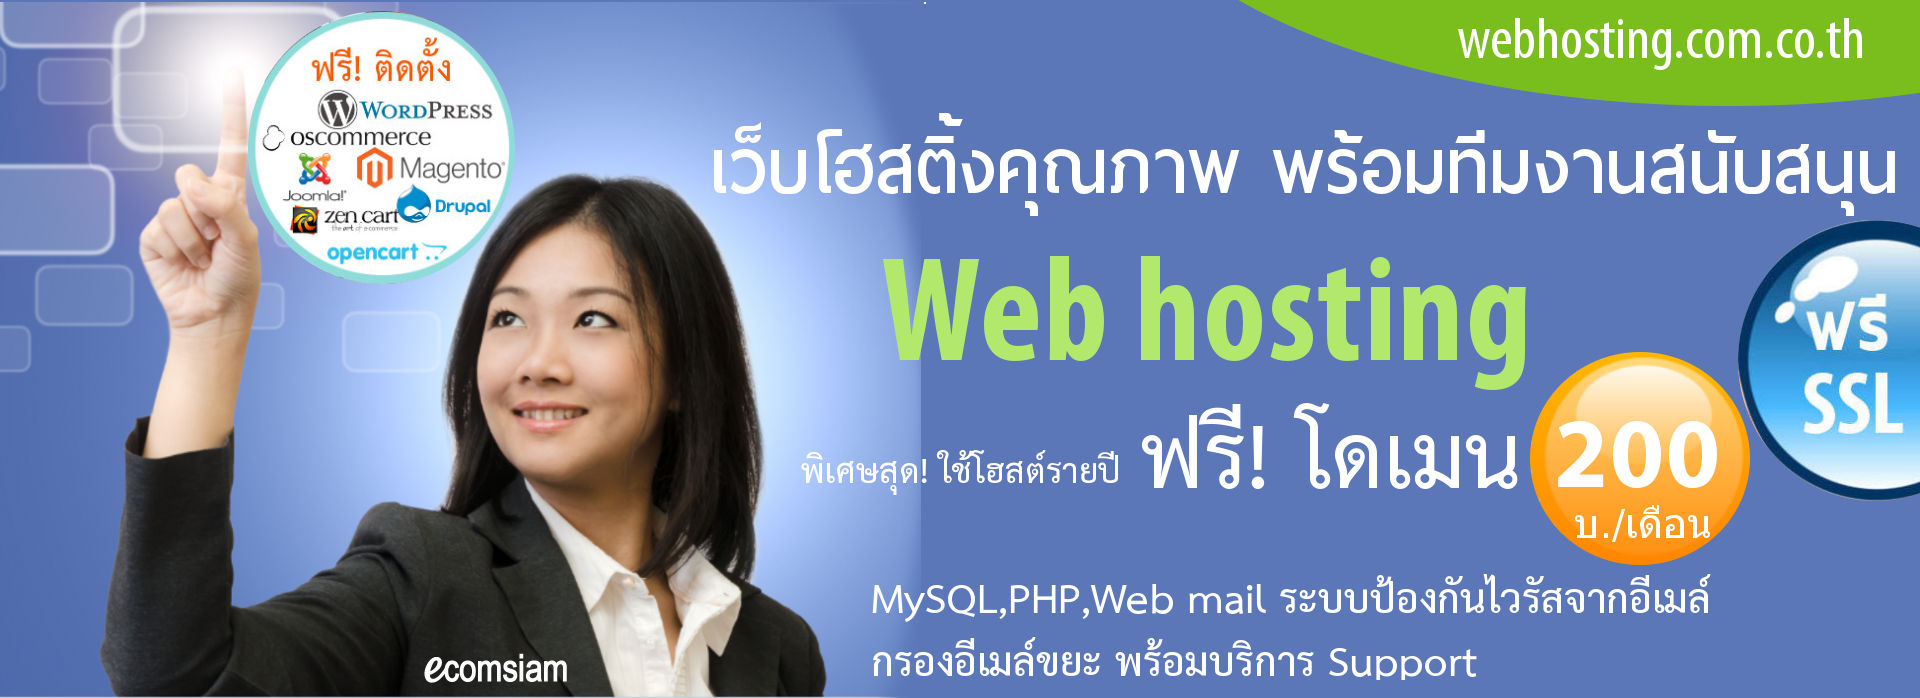 webhosting-free-domain01-banner